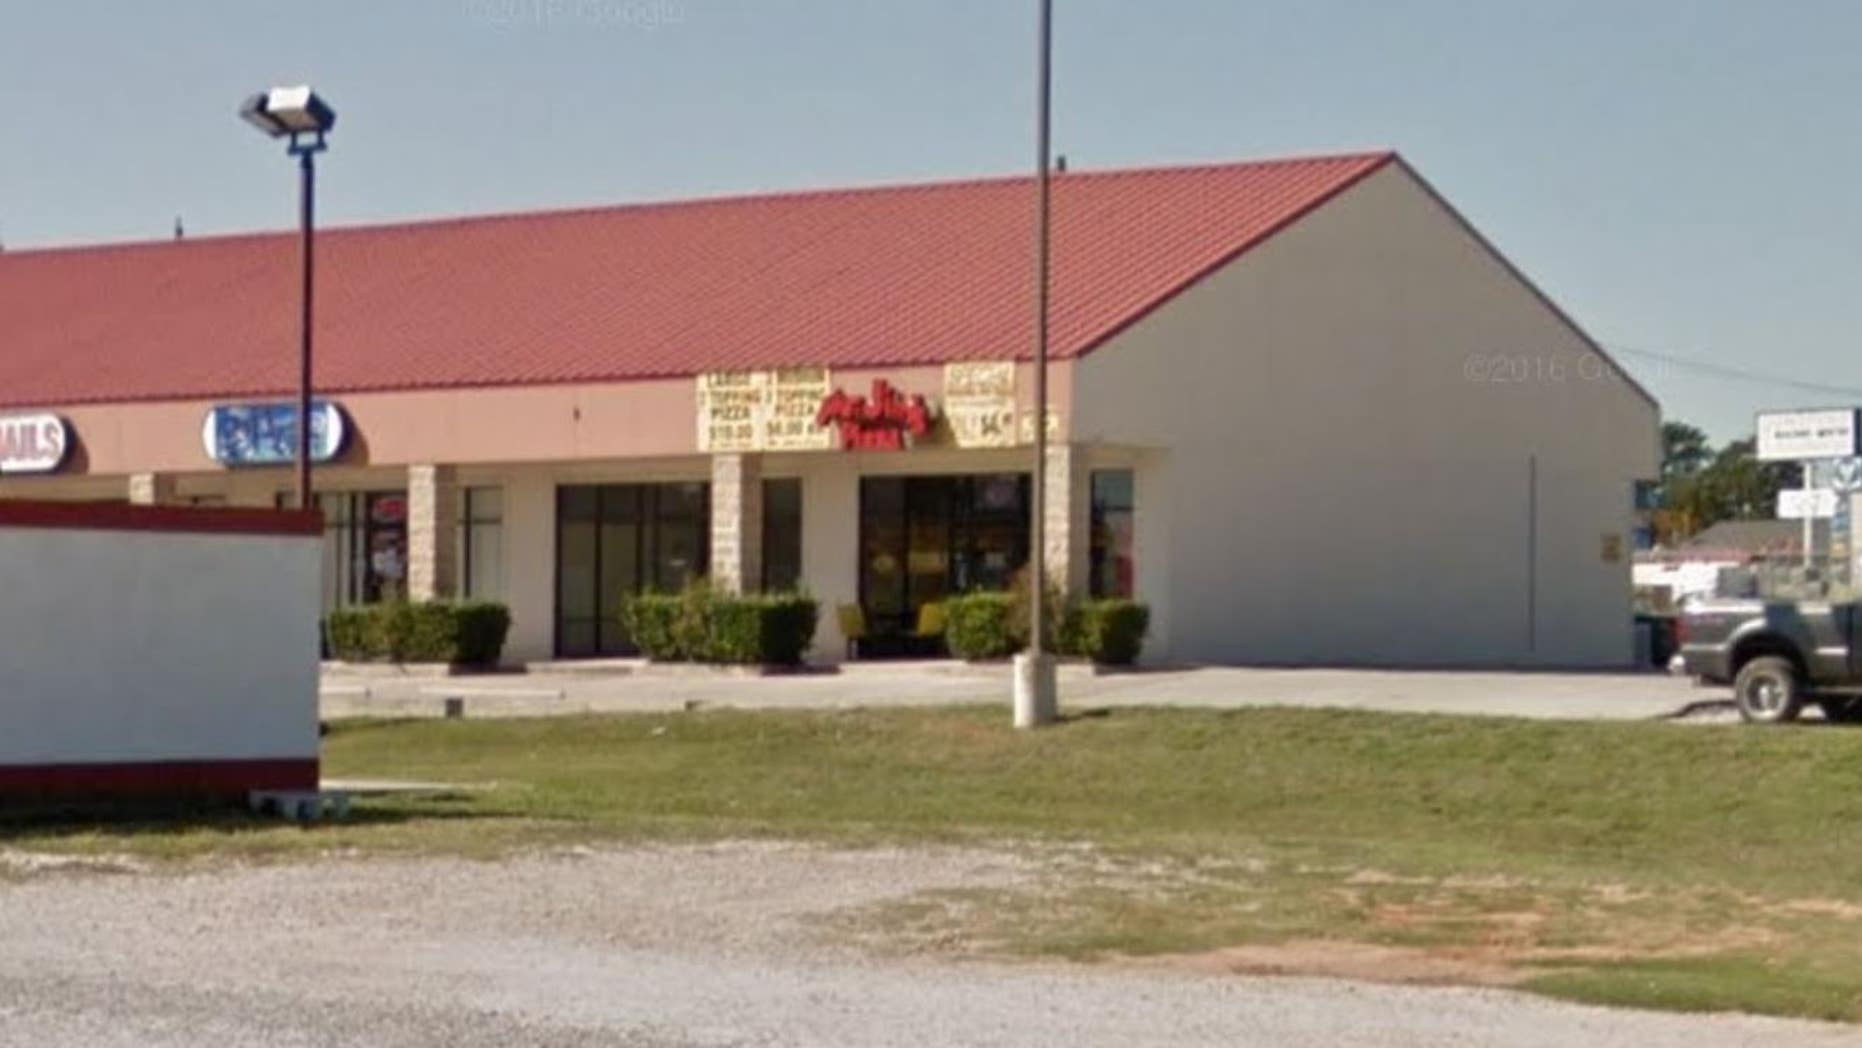 Mr. Jim's Pizza in Springtown, Texas, was forced to close temporarily during an inspection by health inspectors.